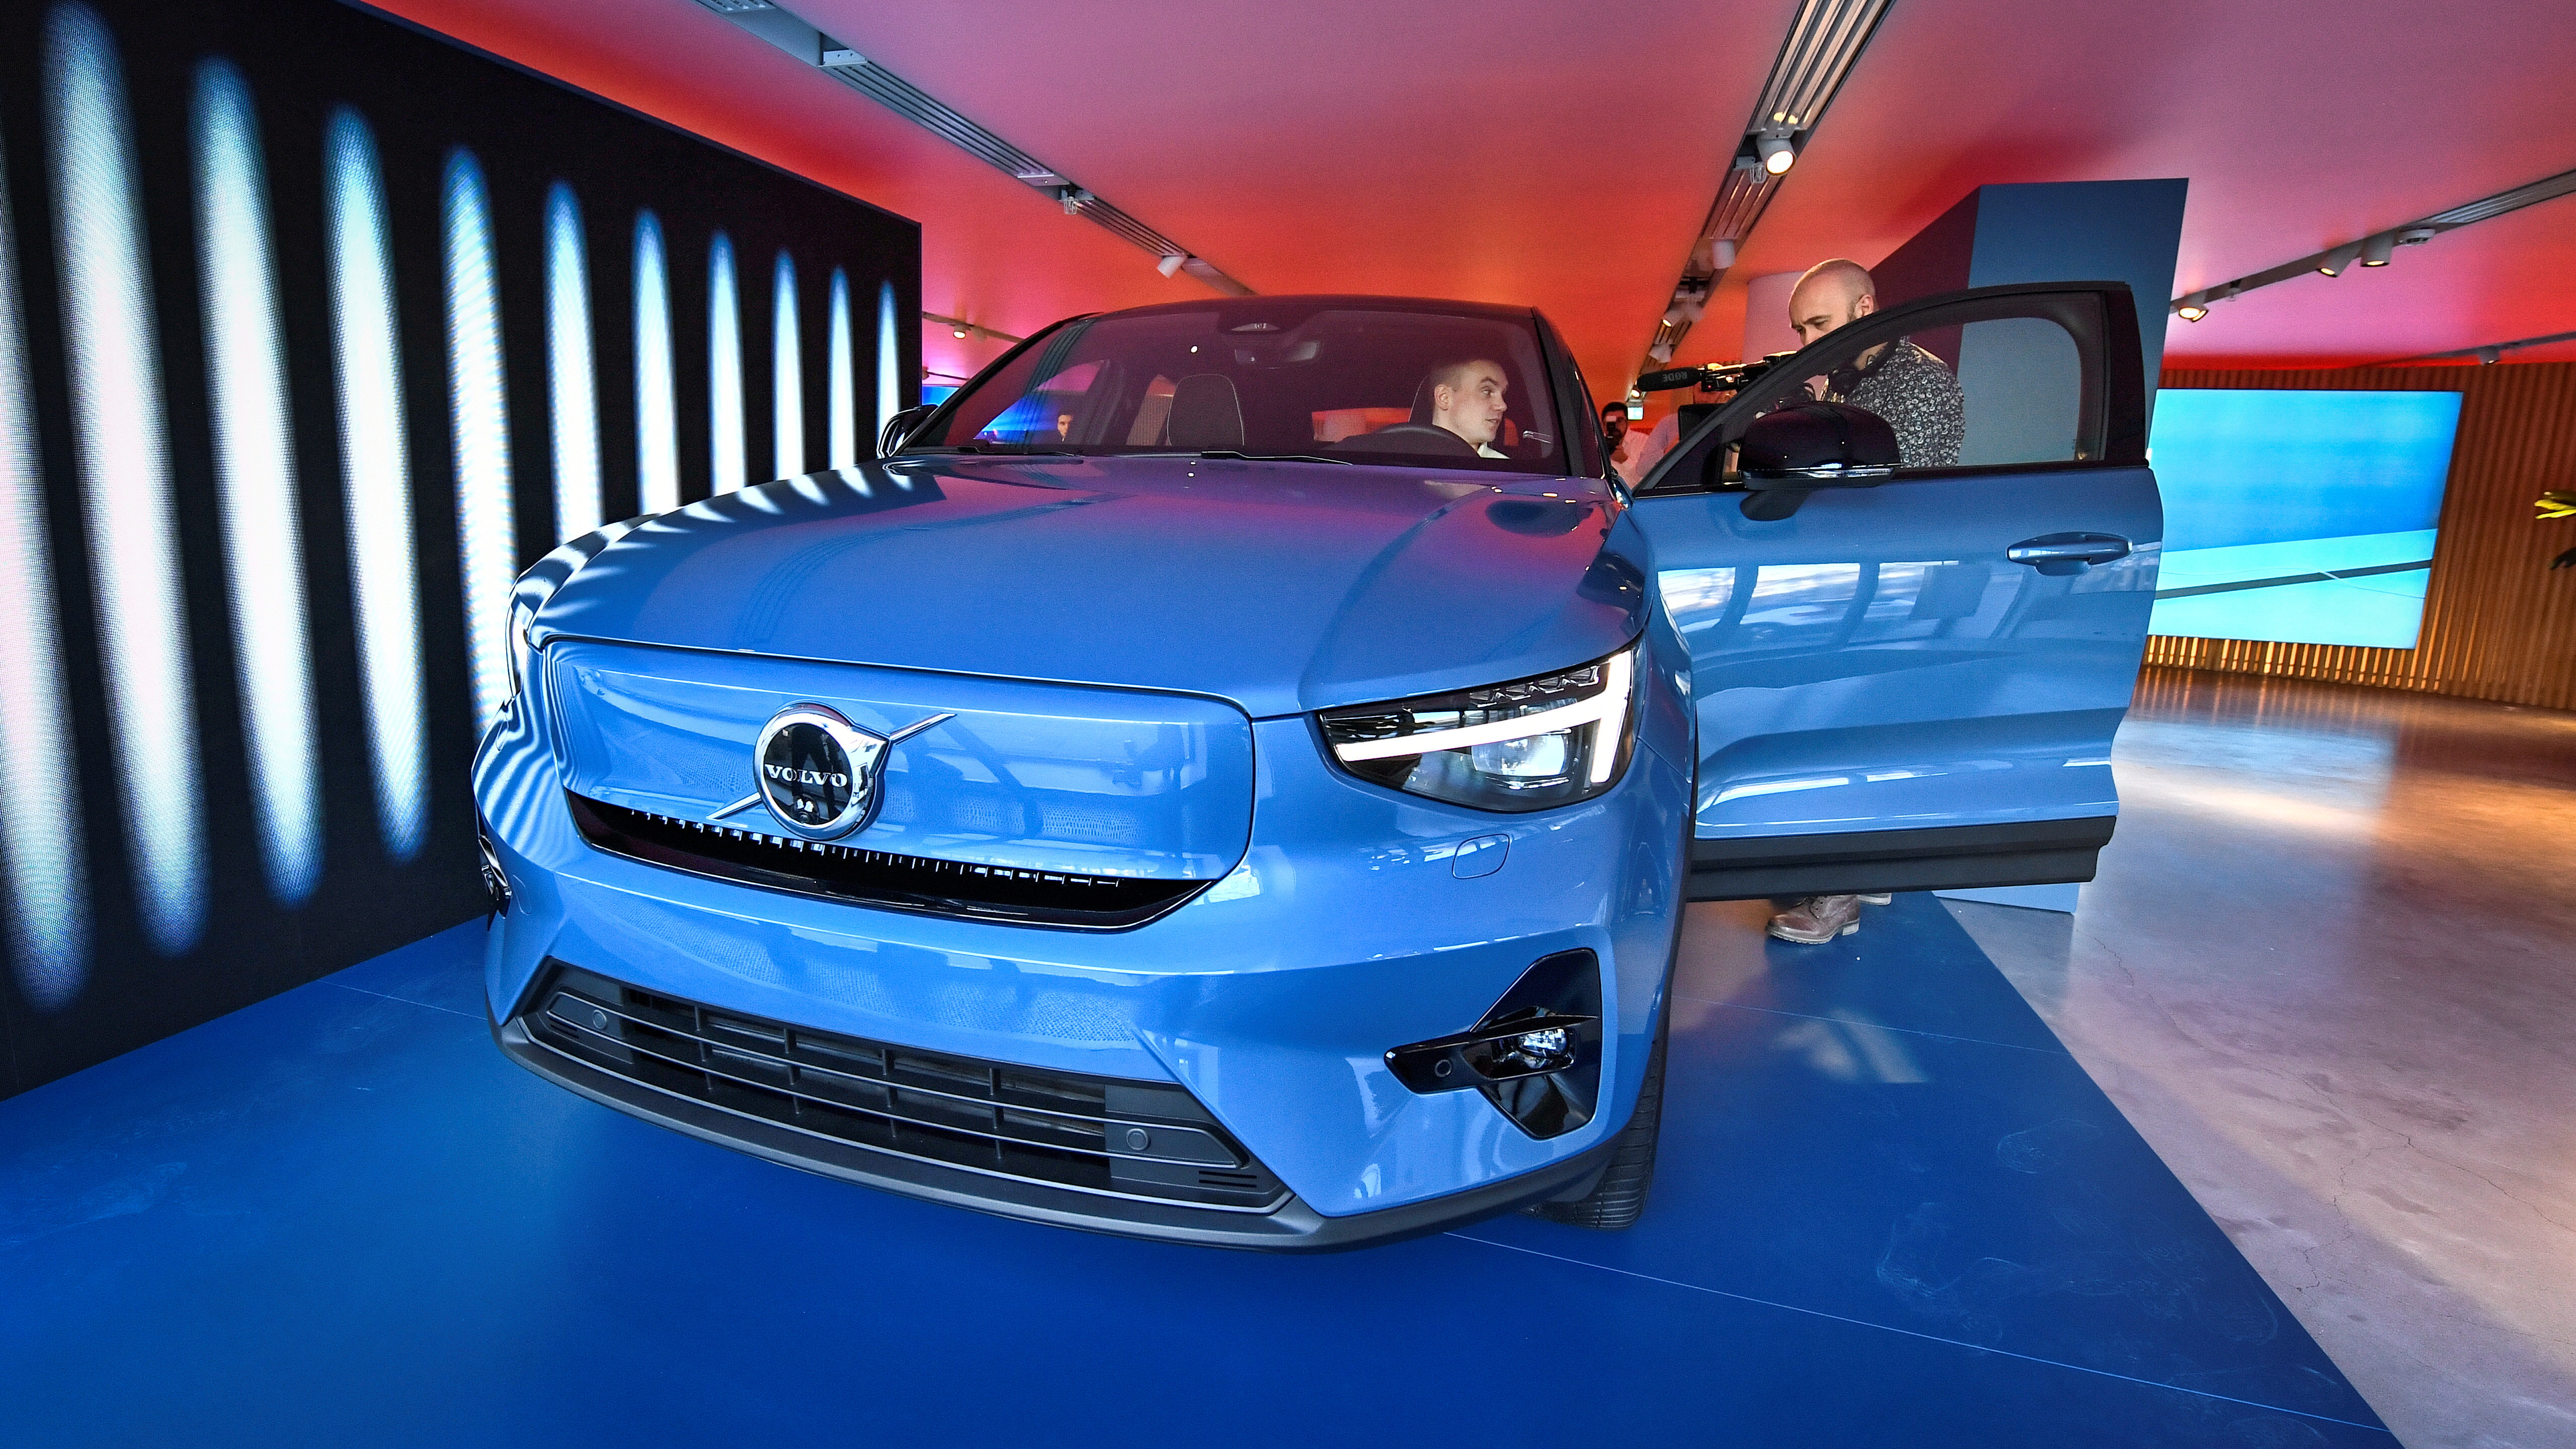 Volvo's new electric car Volvo C40 Recharge is presented in Stockholm, Sweden March 2, 2021. Claudio Breciani/TT News Agency/via REUTERS/File Photo